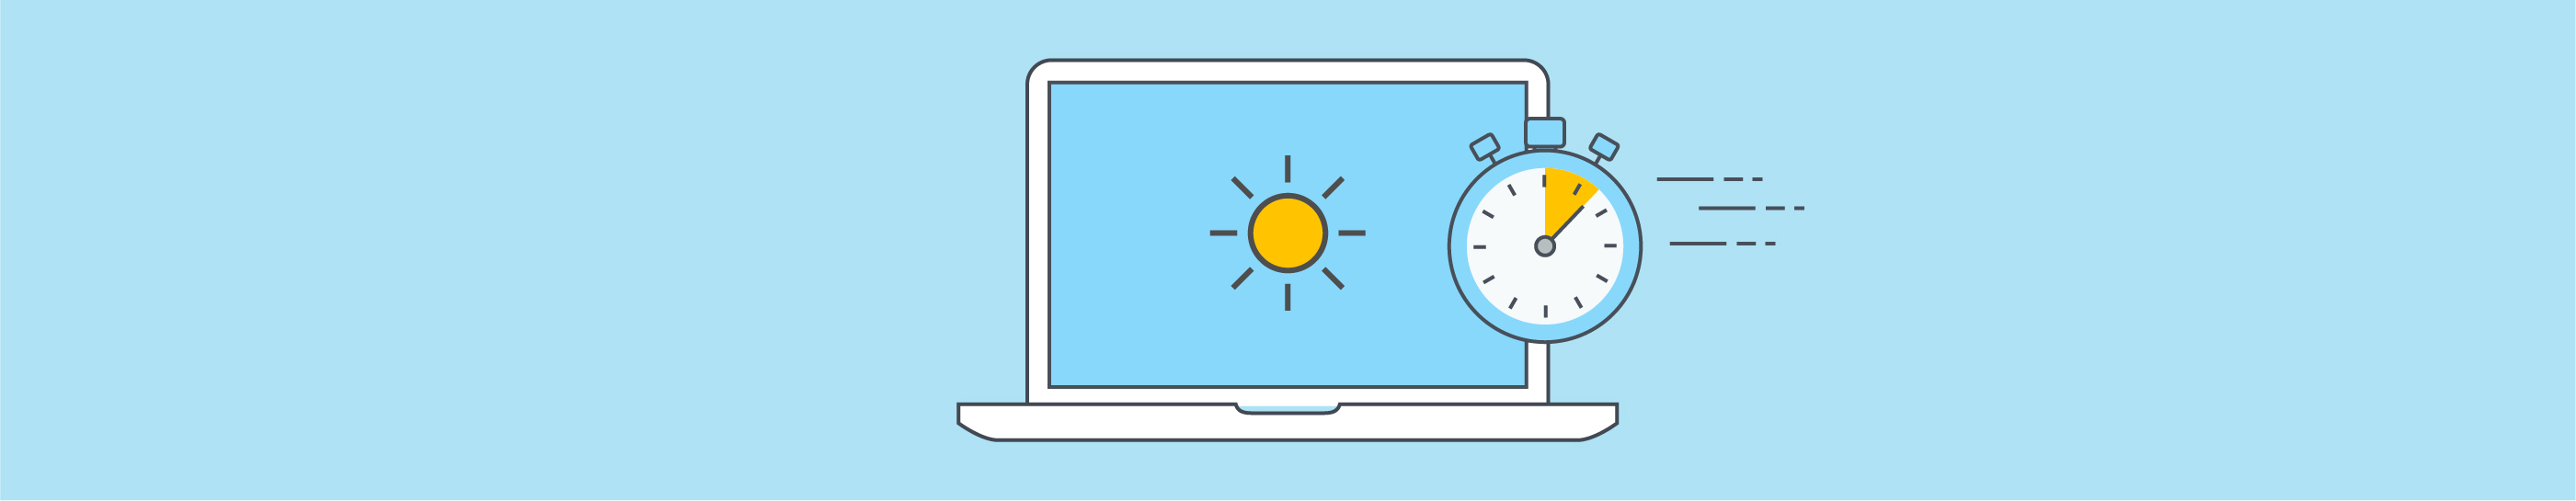 4 easy steps to reach your full potential by scheduling time